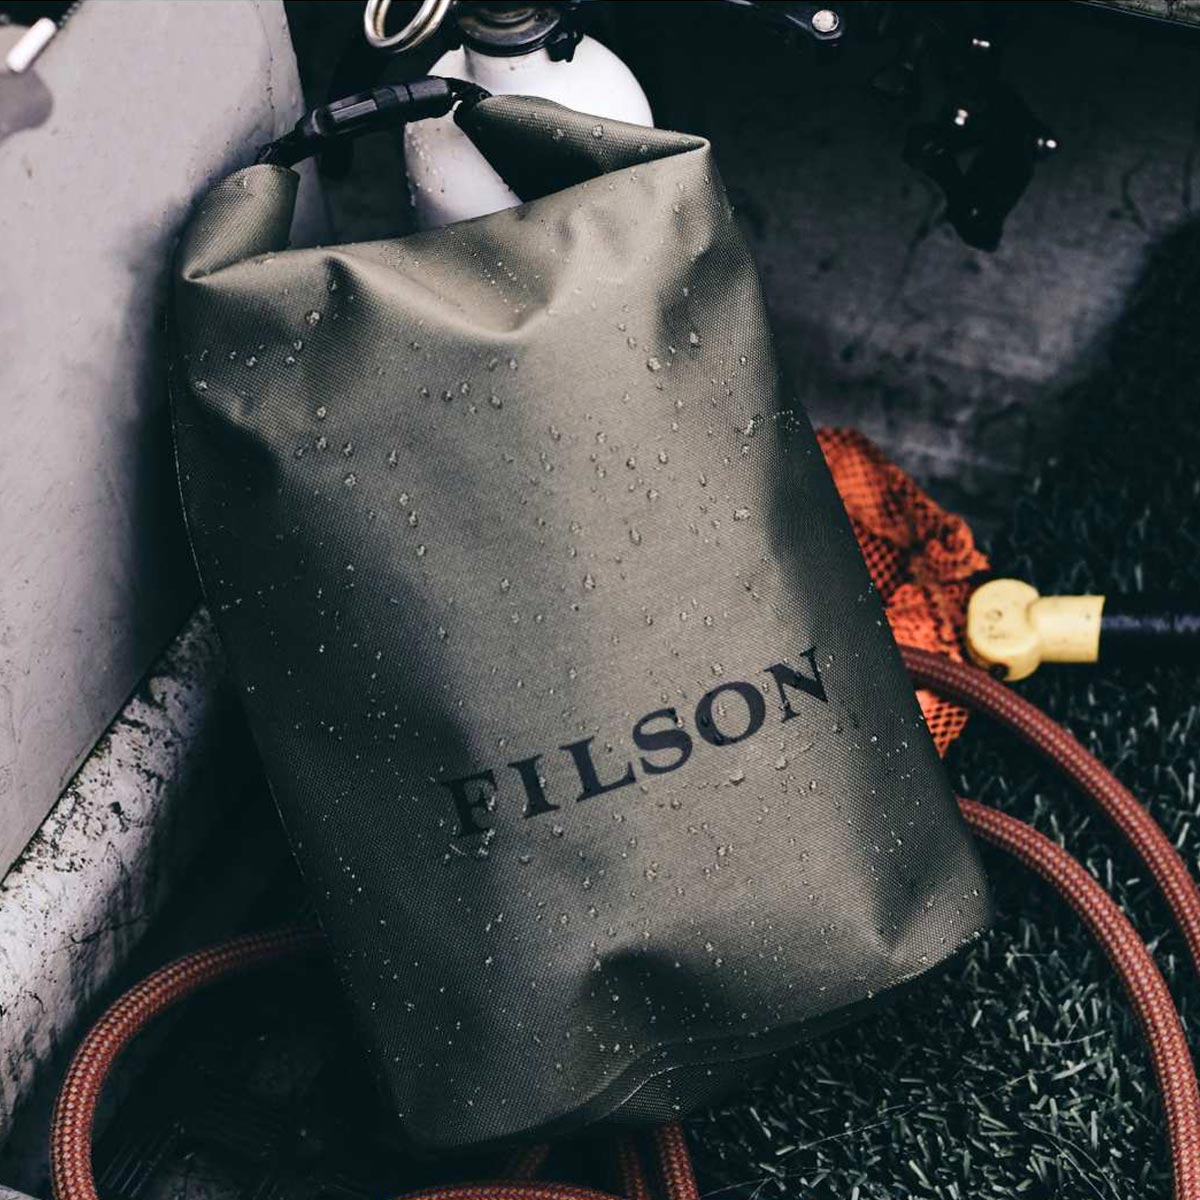 Filson Dry Bag Small, waterproof and lightweight